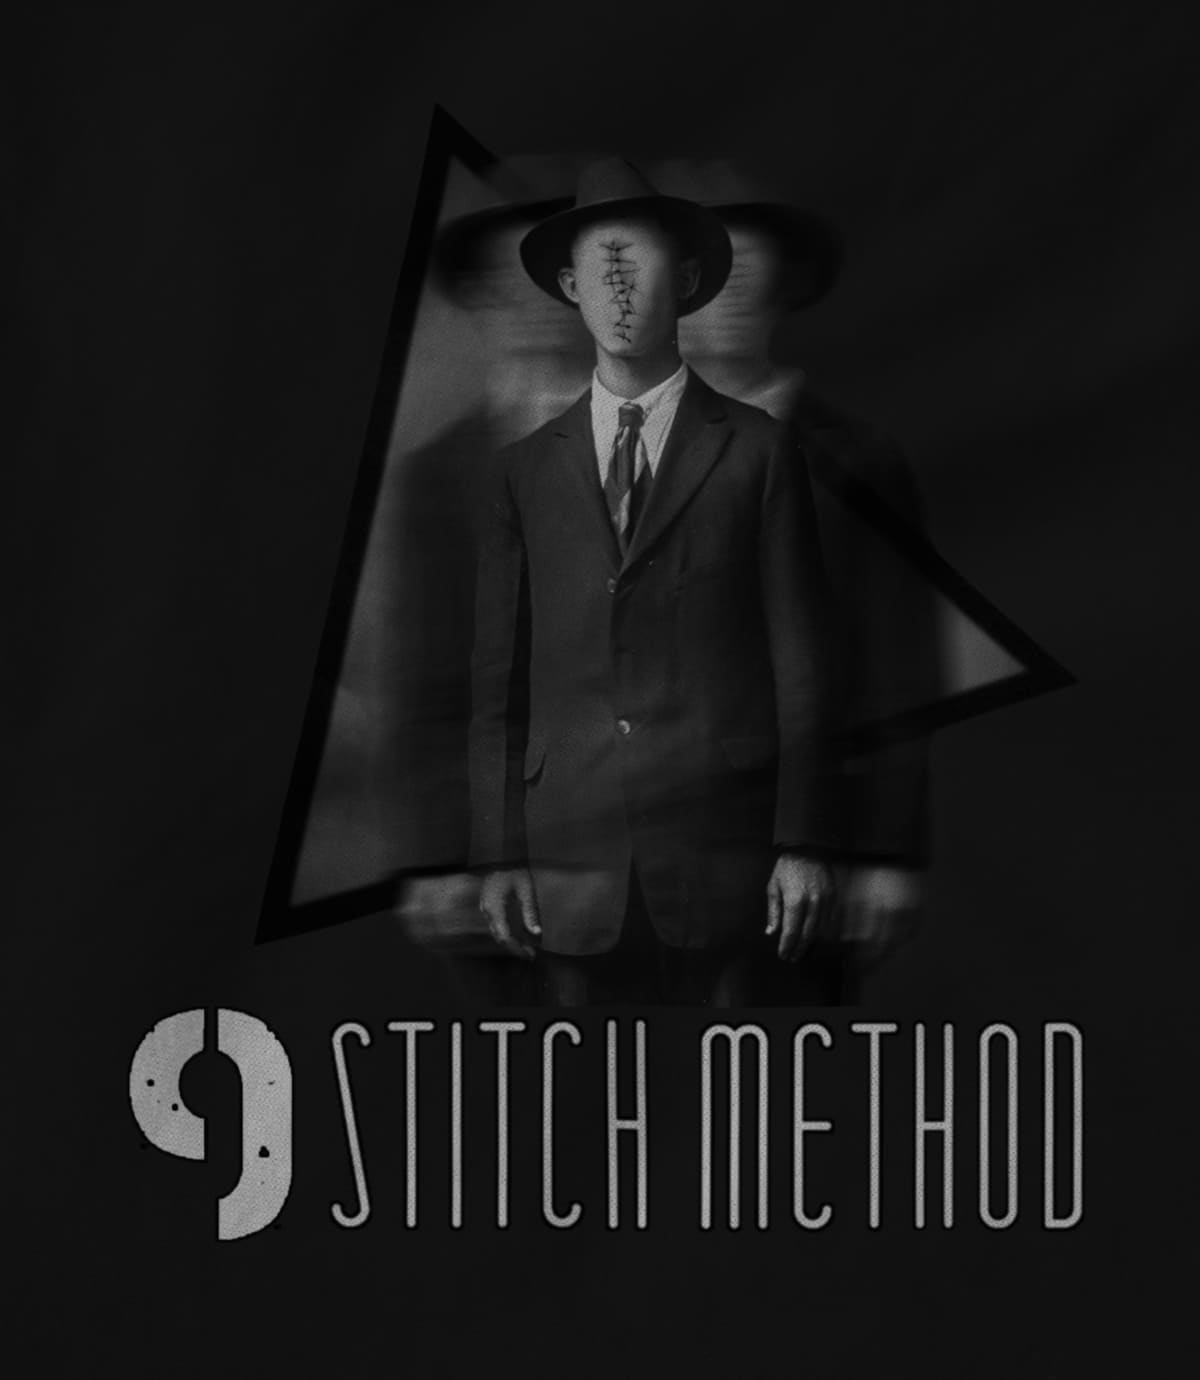 9 Stitch Method